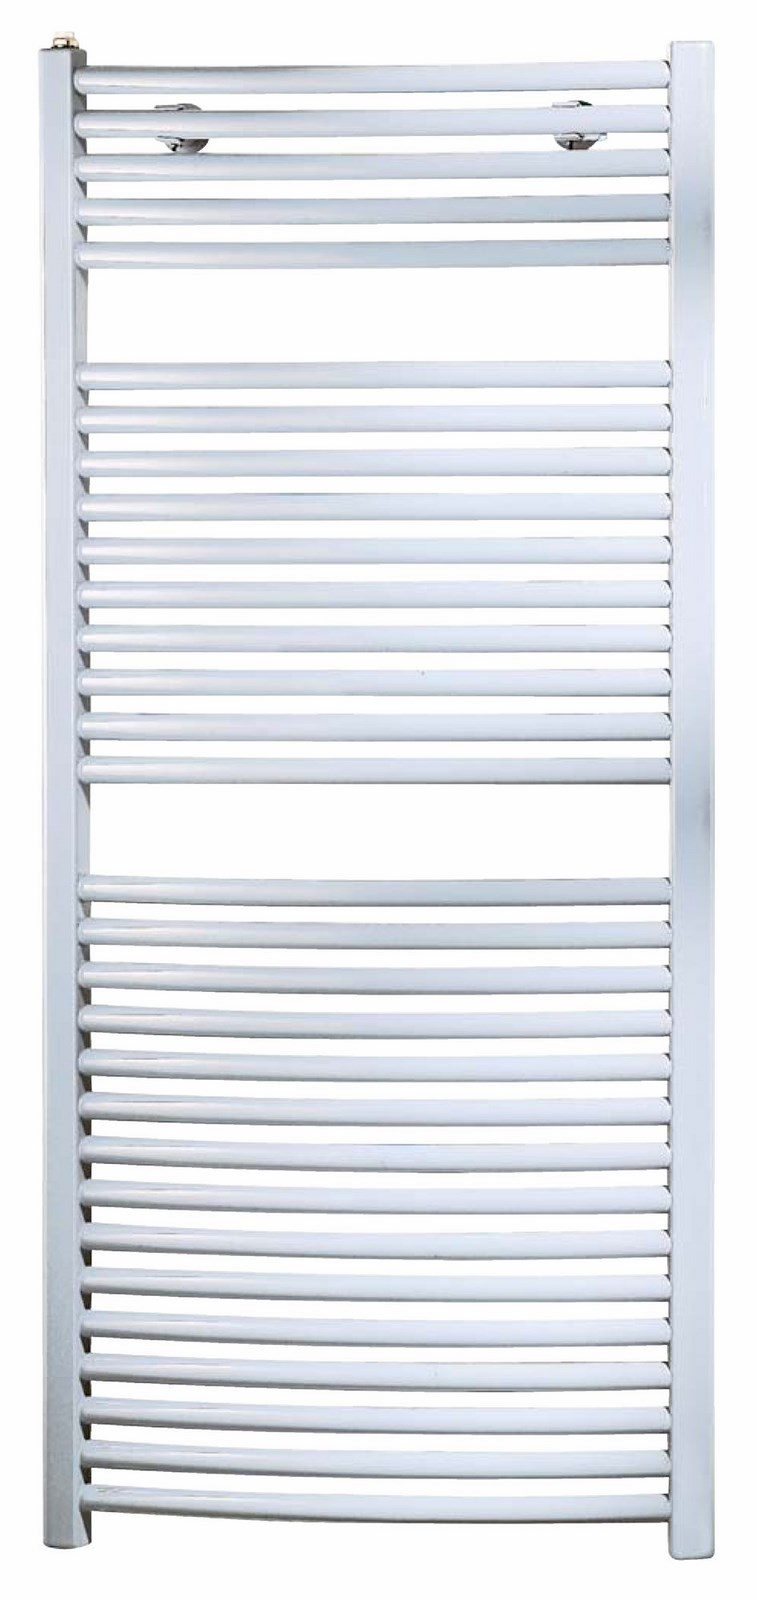 radiateur s che serviettes ola 2 chauffage central sanitaire distribution. Black Bedroom Furniture Sets. Home Design Ideas